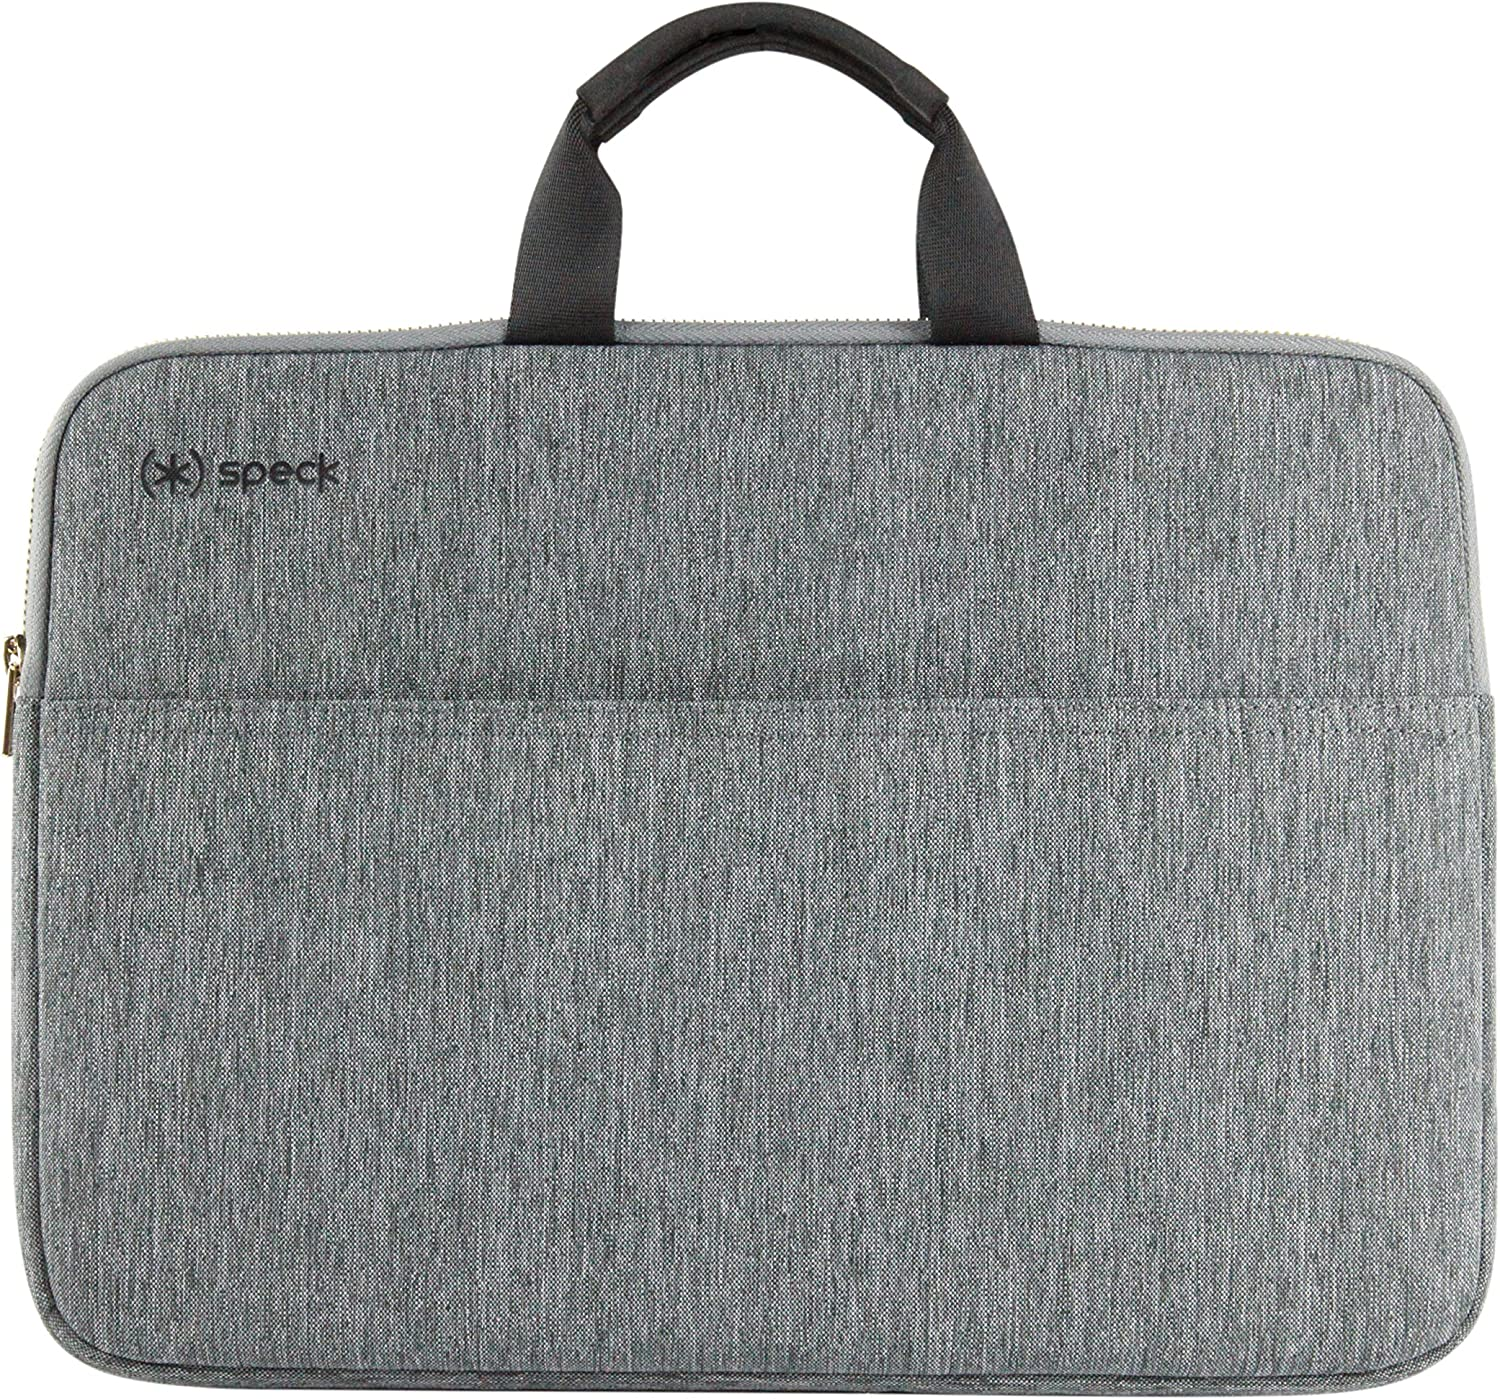 Speck Products Haversack Sleeve, Universal Sleeve for 13-14 Inch Laptops, Wolf Grey